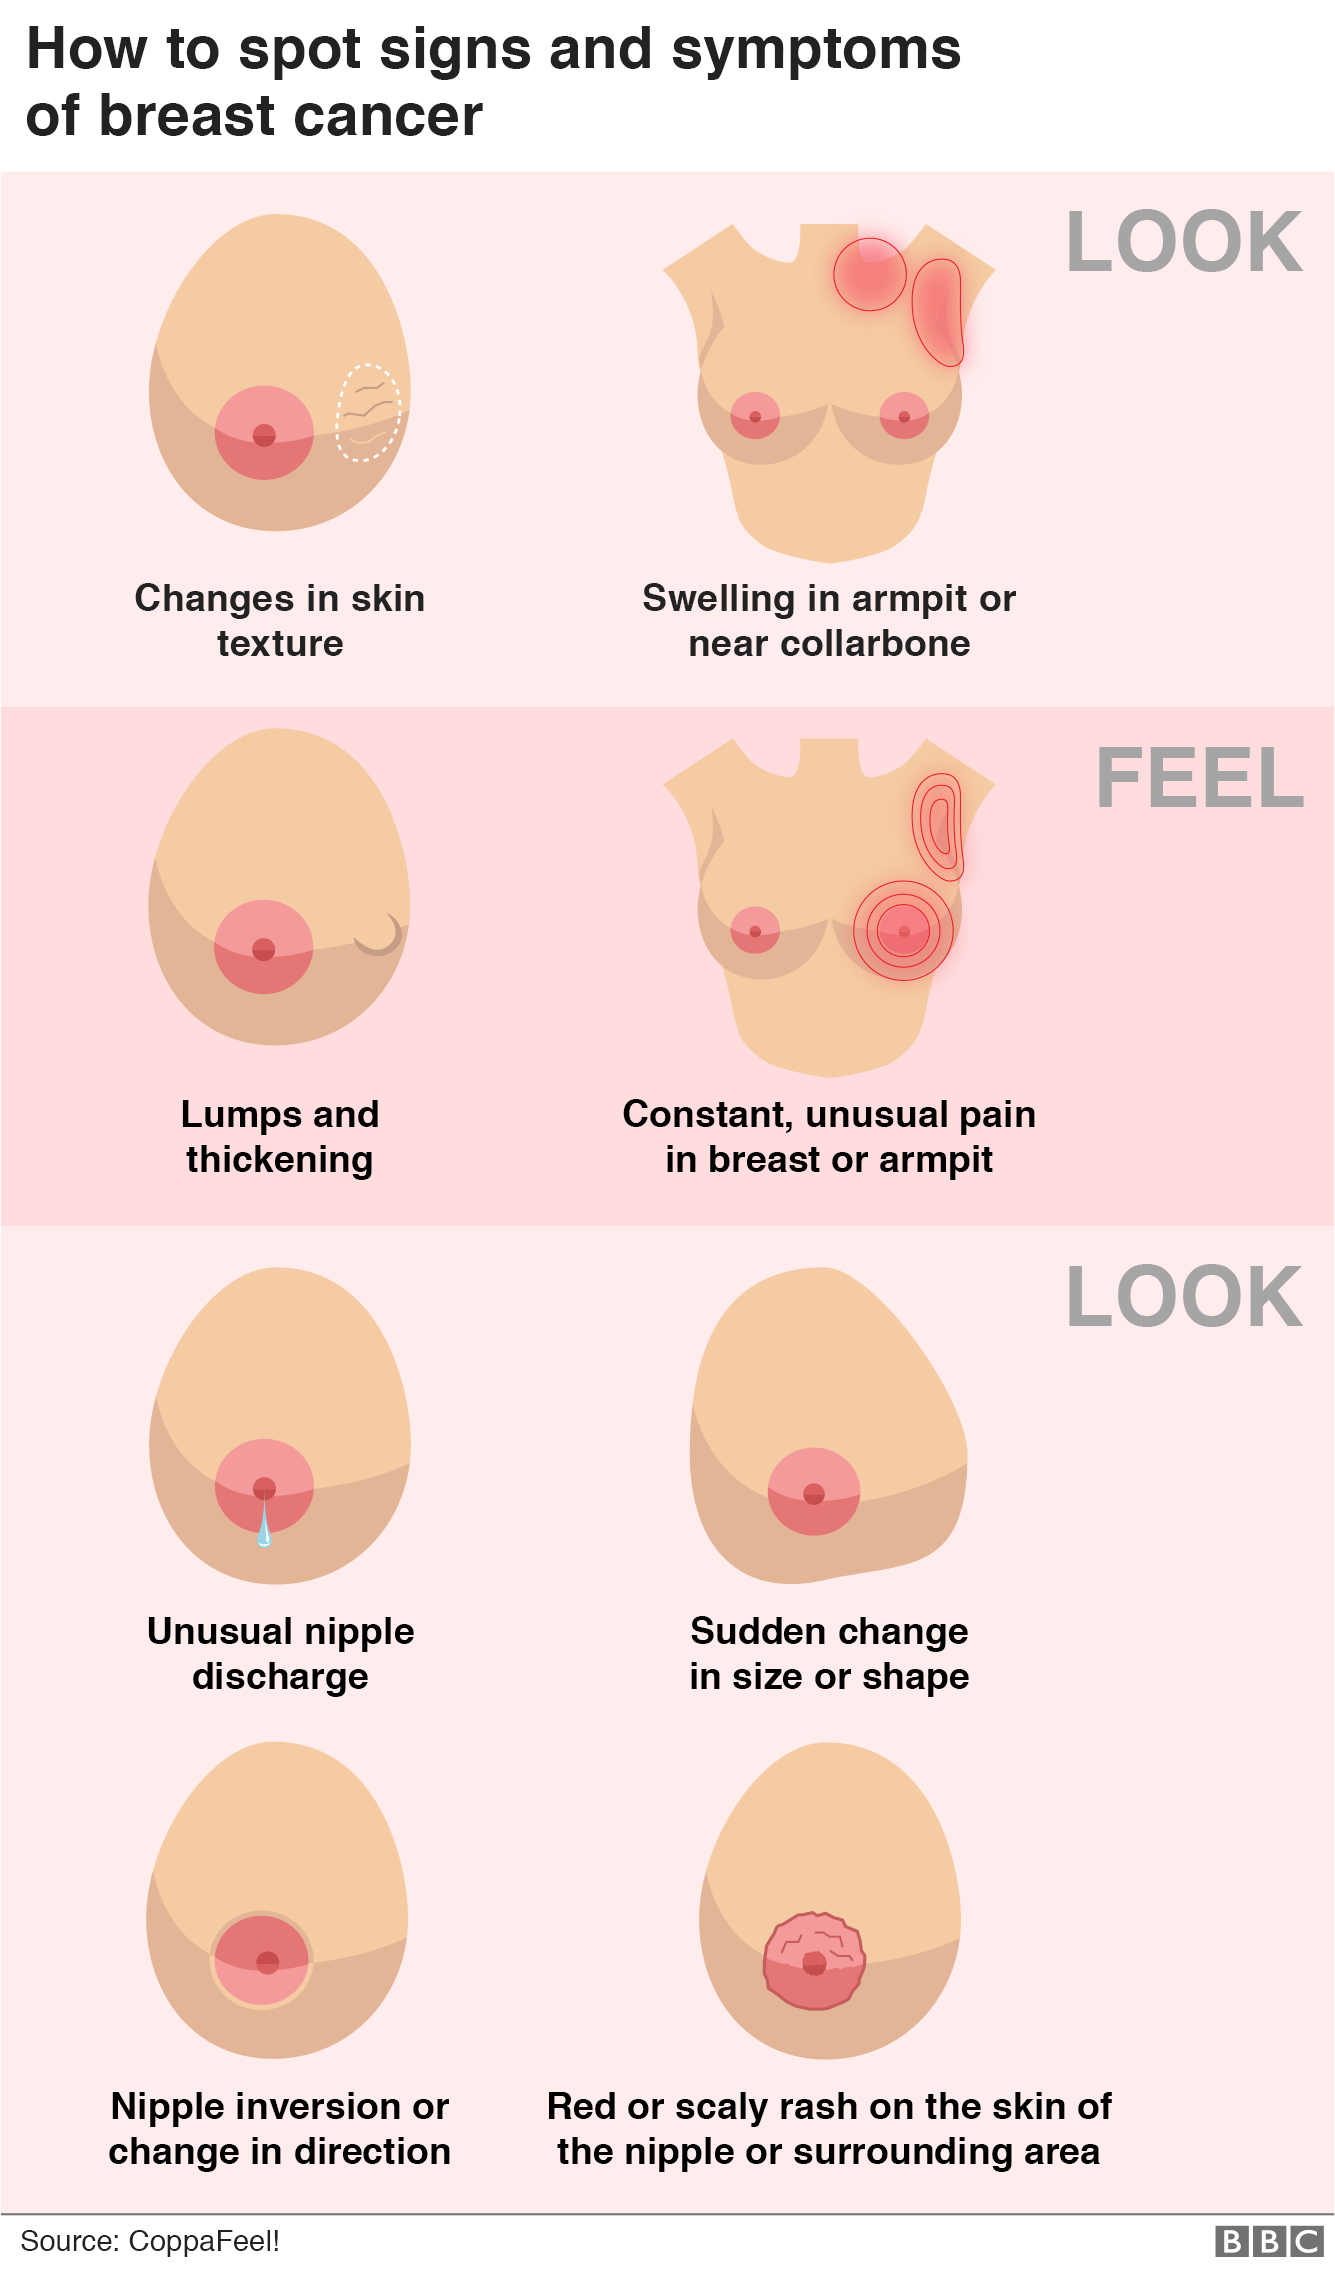 Graphic showing how to spot the signs and symptoms of breast cancer